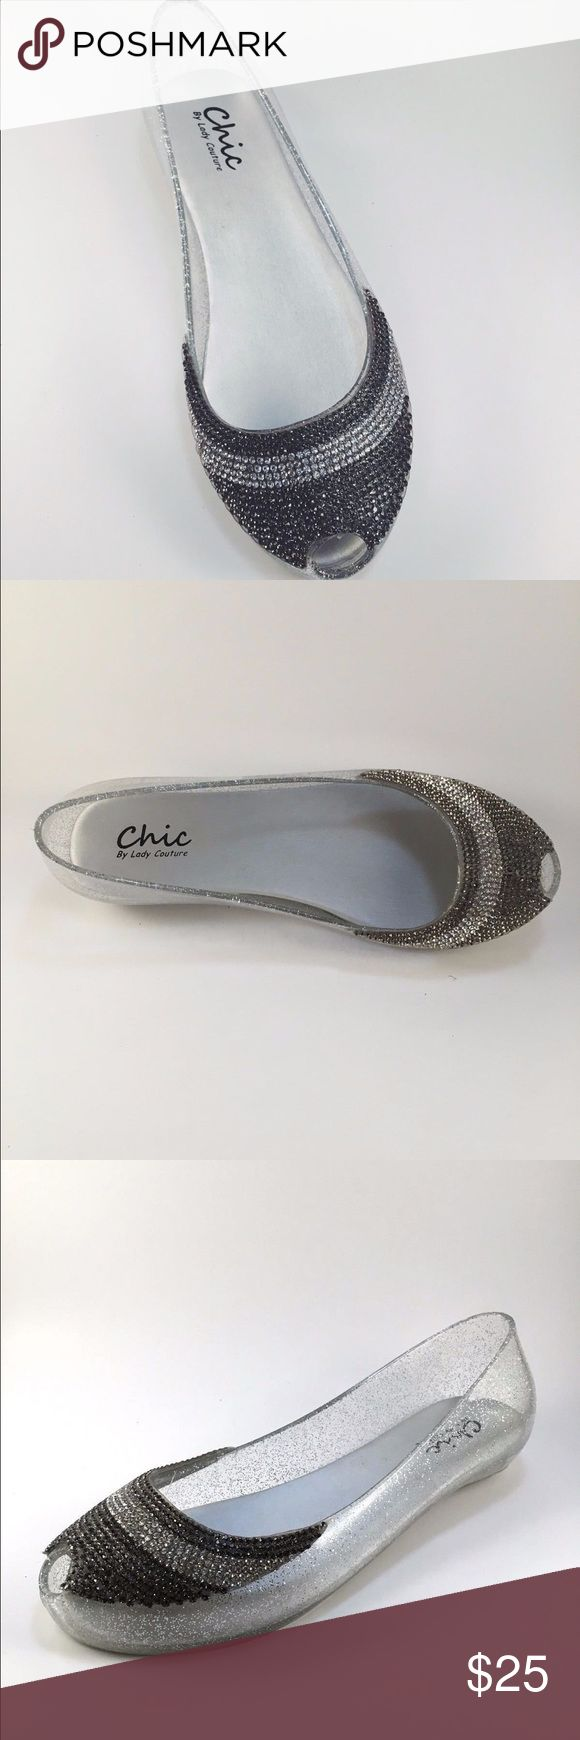 Peep Toe Jelly Dressy Flats New without box. Chic by Lady Couture Peep Toe Jelly Dressy Flats. Material: Rubber. Glitter with two stone rhinestones in the front. US Size: 10 Chic by Lady Couture Shoes Flats & Loafers